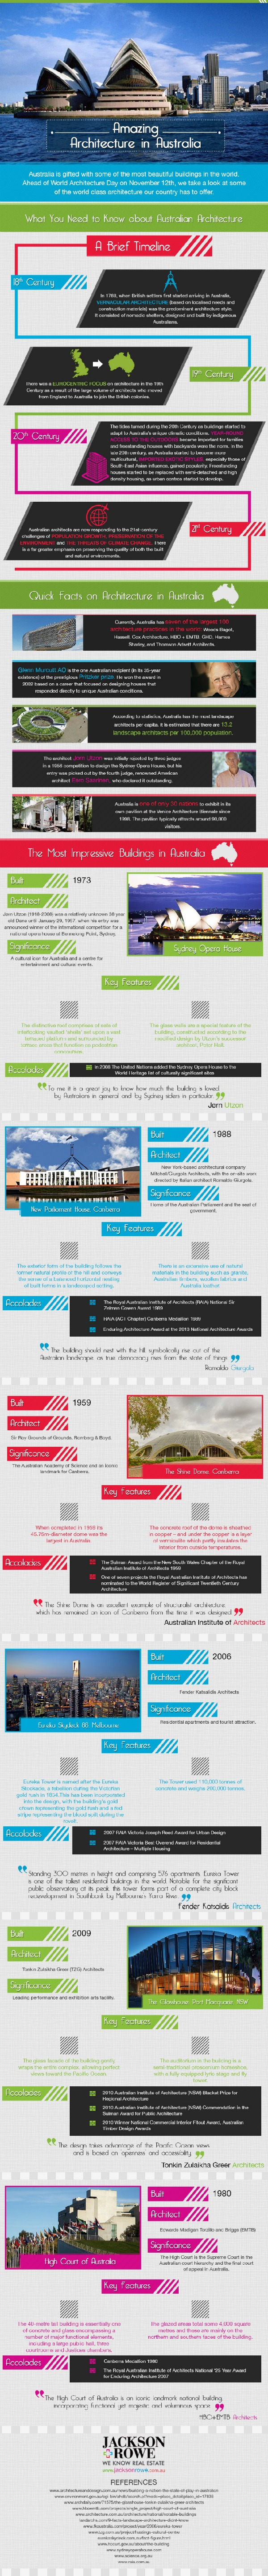 history and highlights of Australian architecture infographic